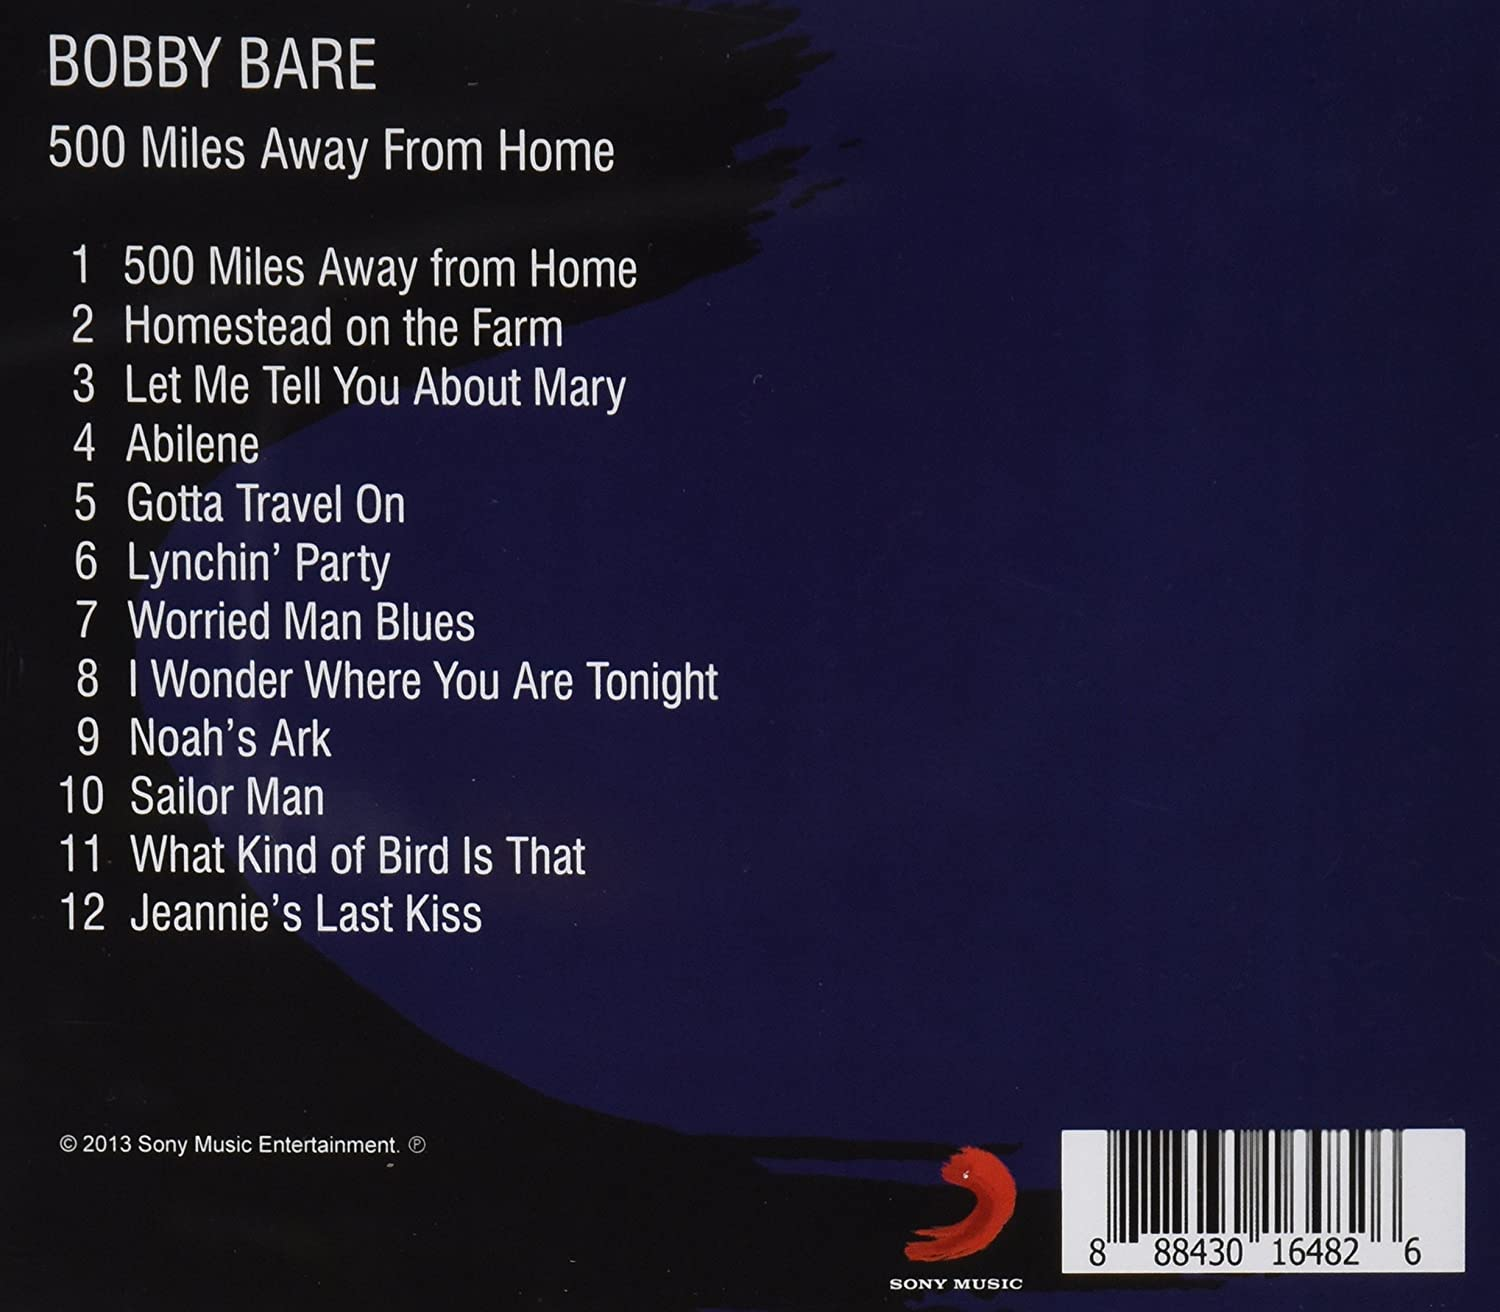 Bobby bare 500 miles away from home mp3 download and lyrics.